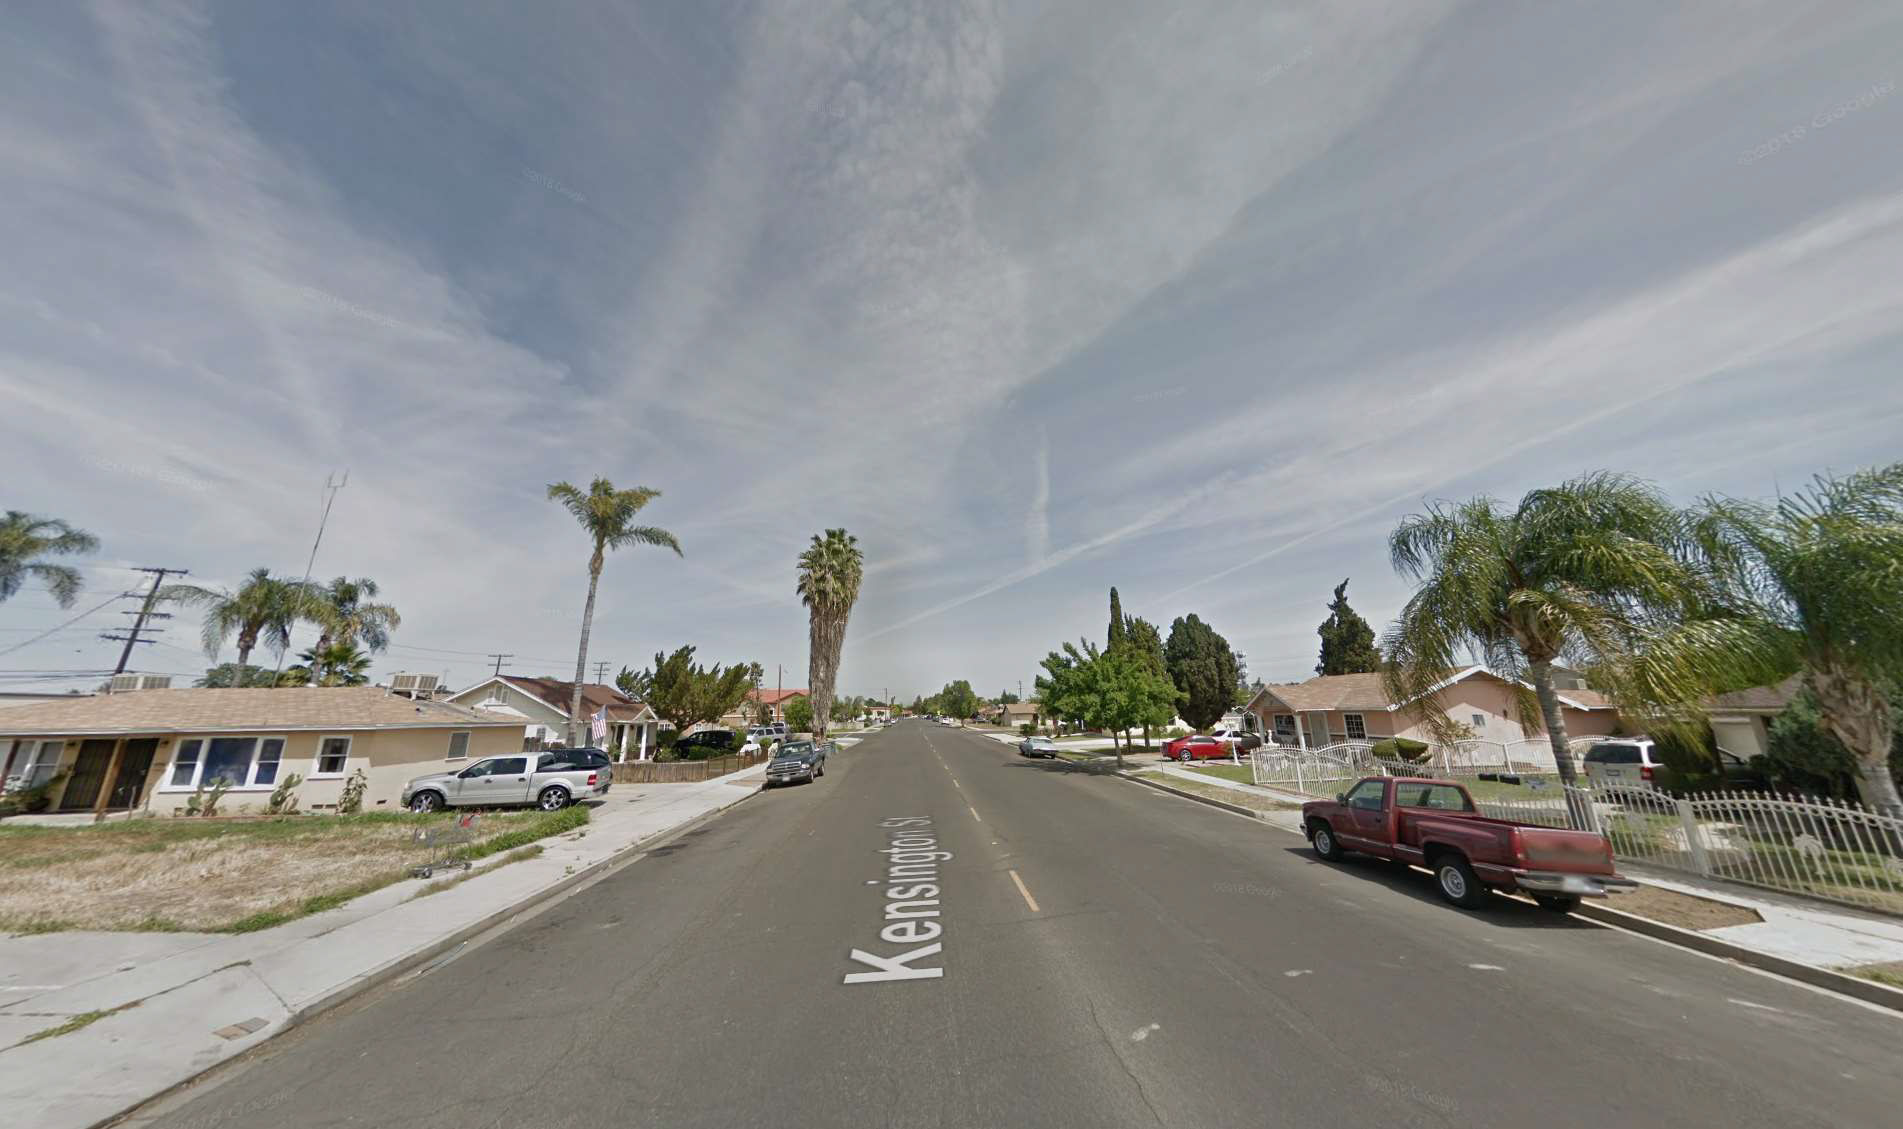 Street view of average neighborhood in Bakersfield